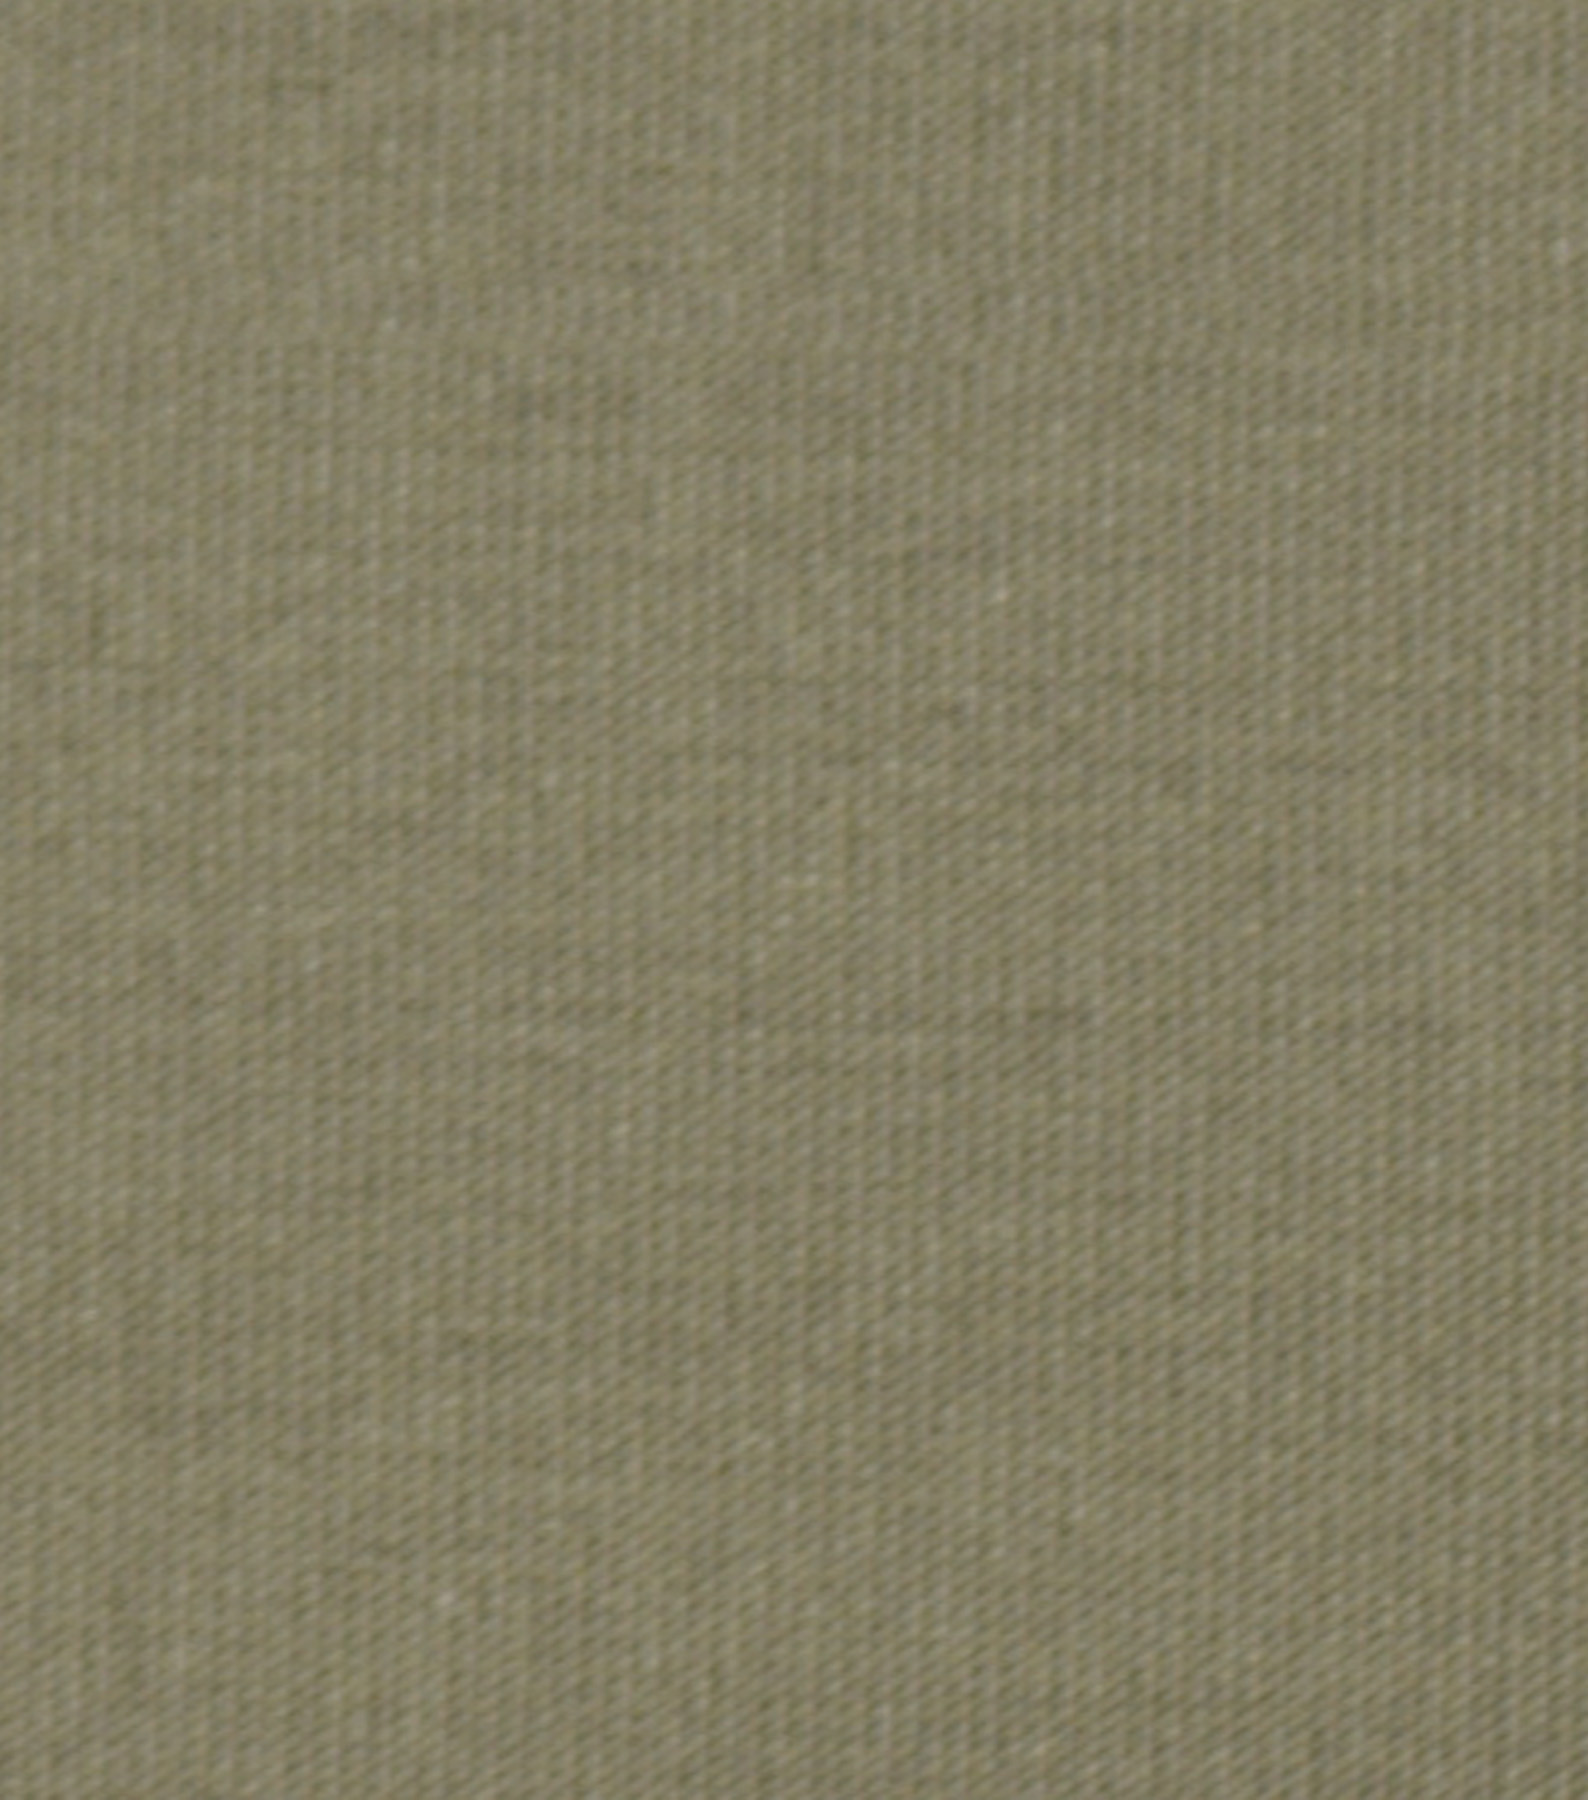 Home Decor 8\u0022x8\u0022 Fabric Swatch-Solid Fabric Signature Series Kalin Bhopal